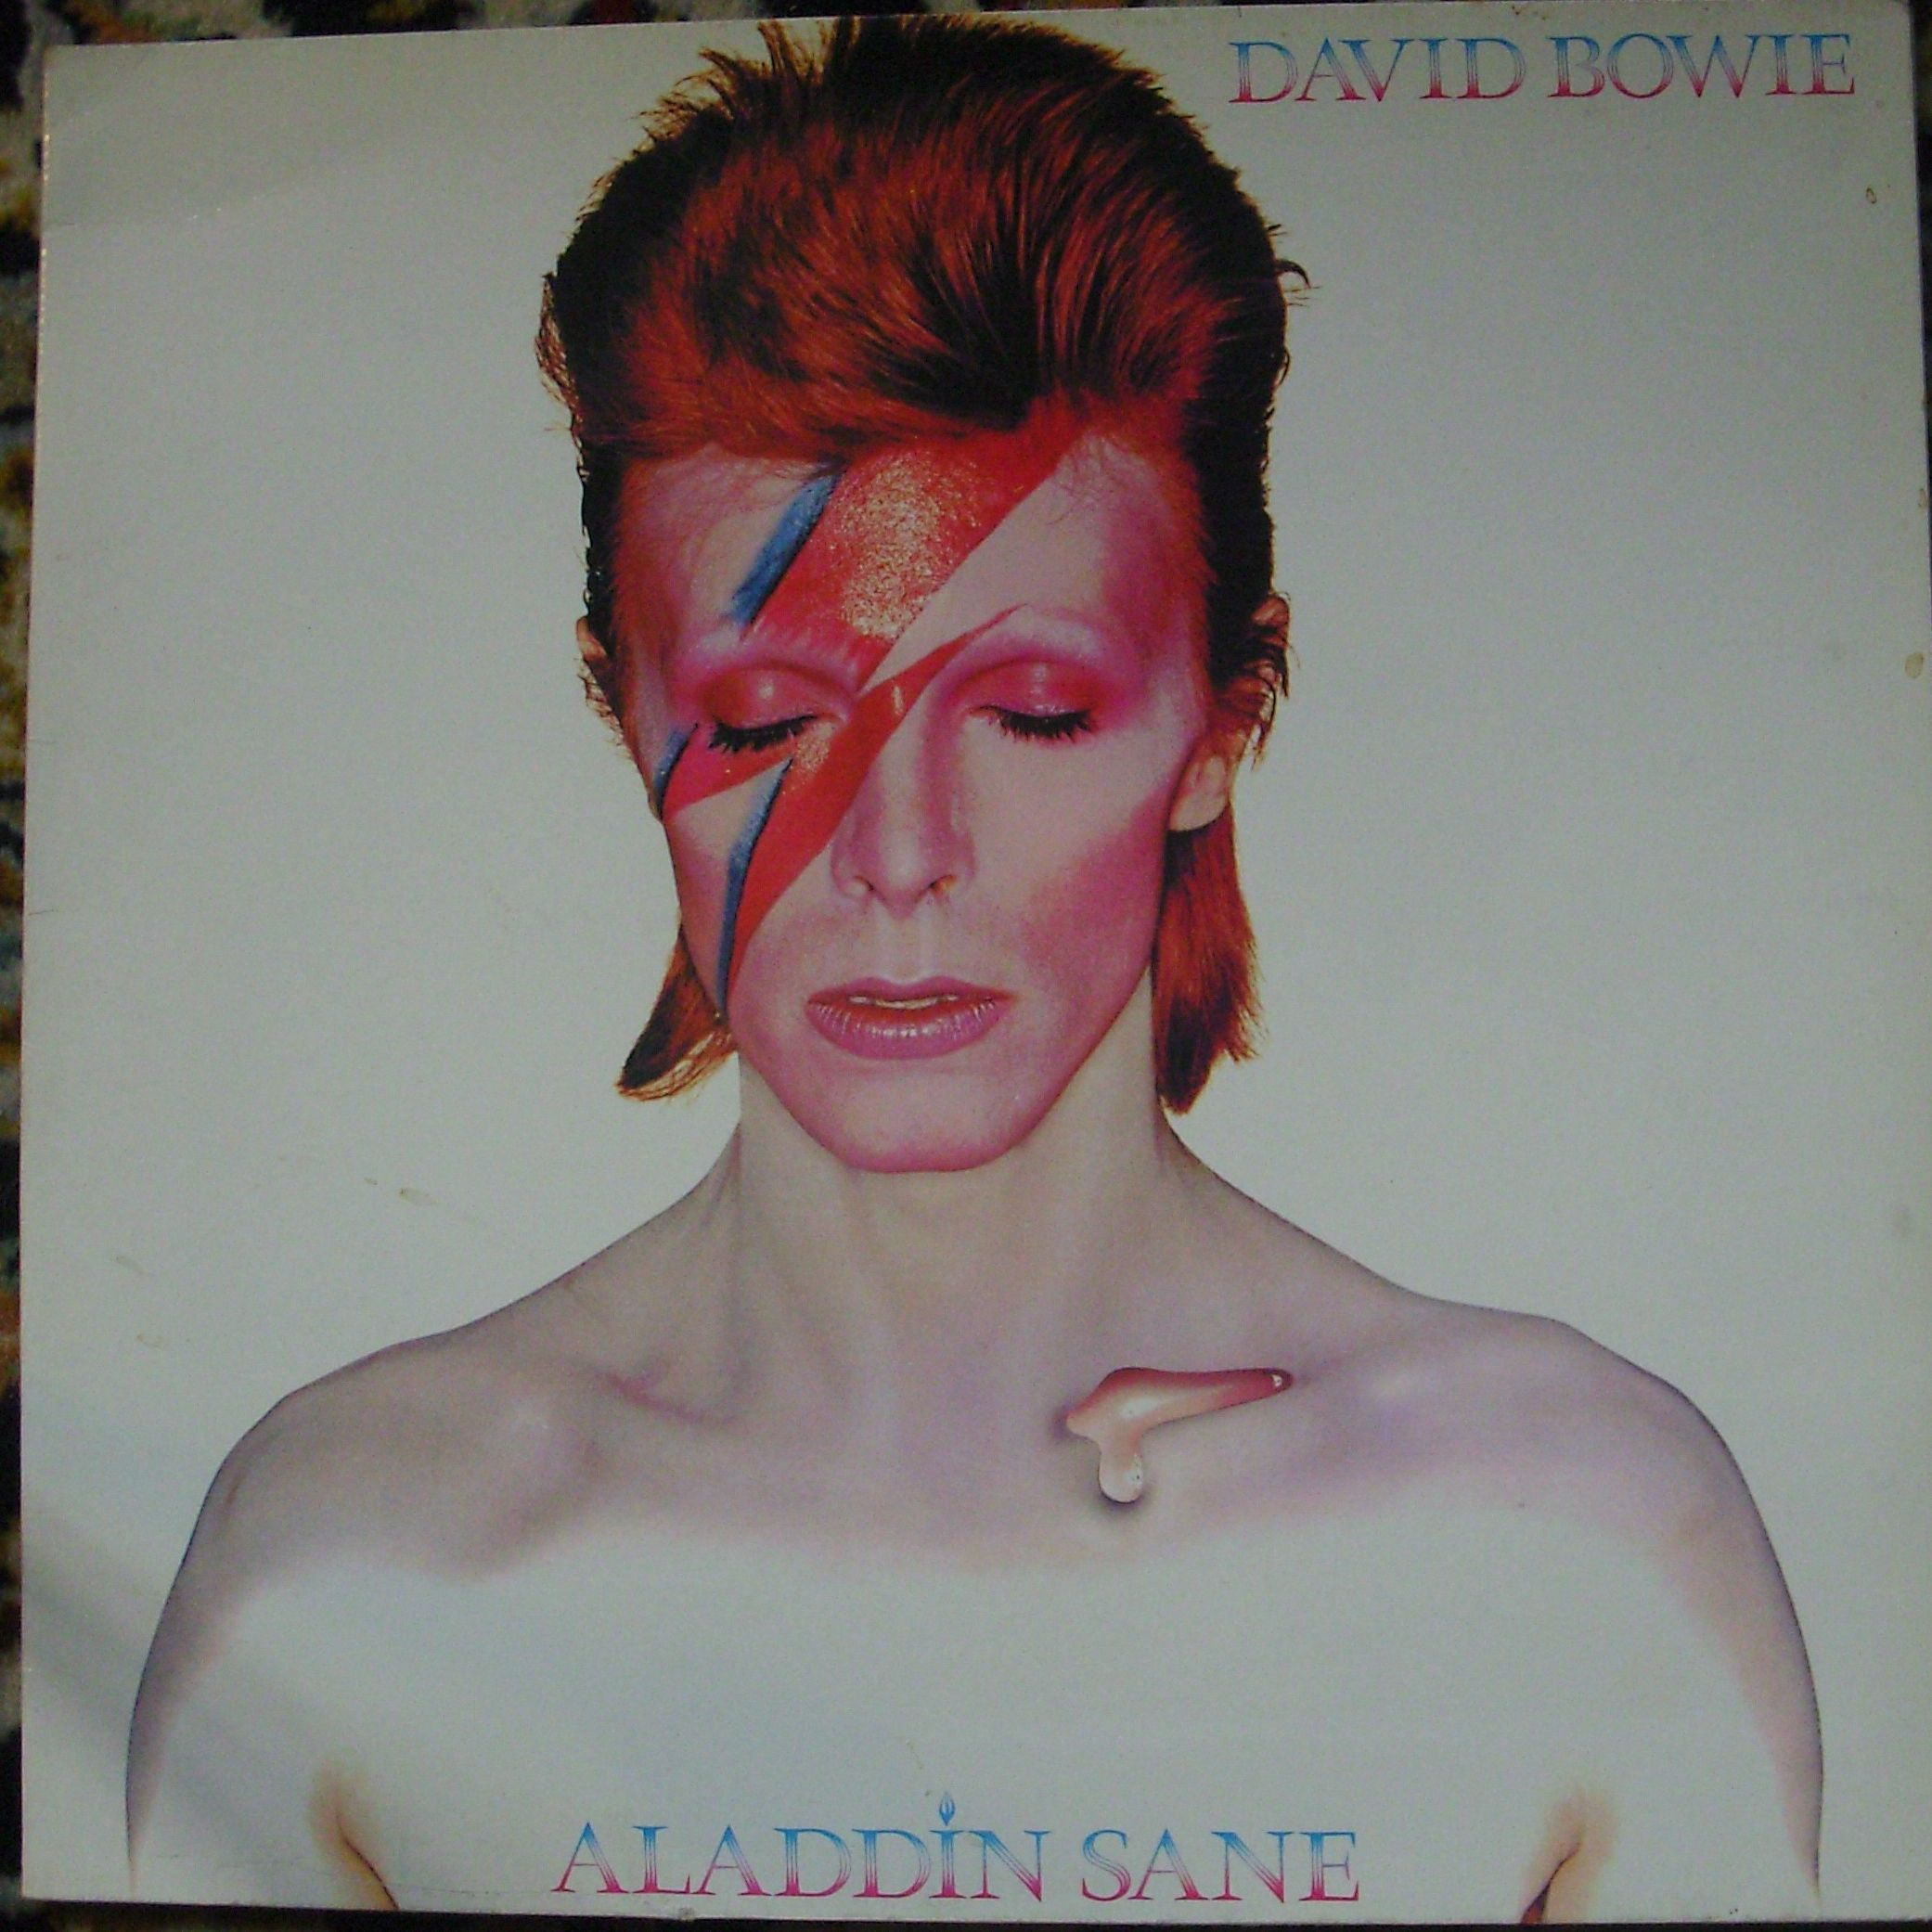 David Bowie Aladdin Sane LP undefined